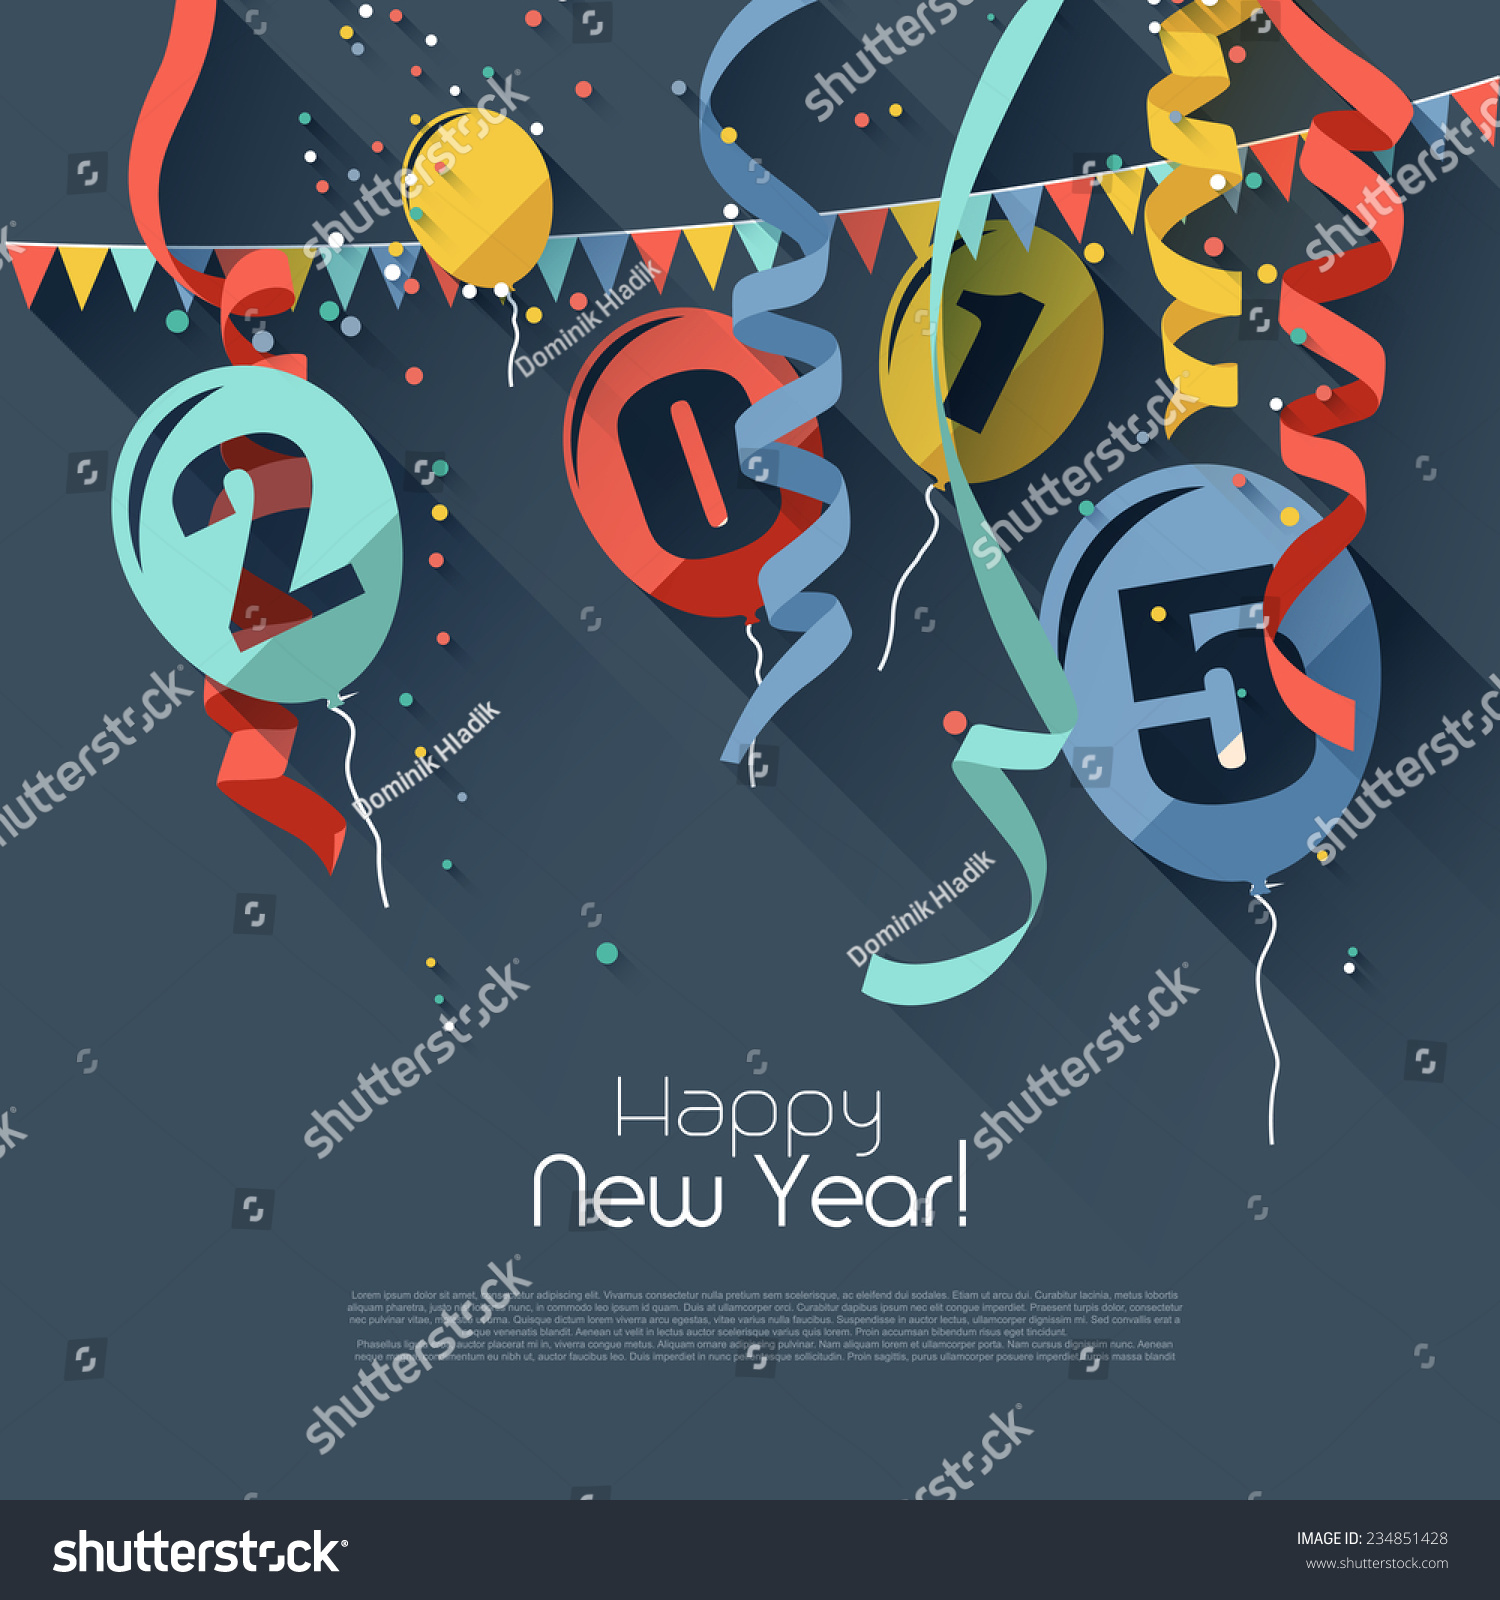 Happy new year 2015 modern greeting stock vector royalty free happy new year 2015 modern greeting card in flat design style m4hsunfo